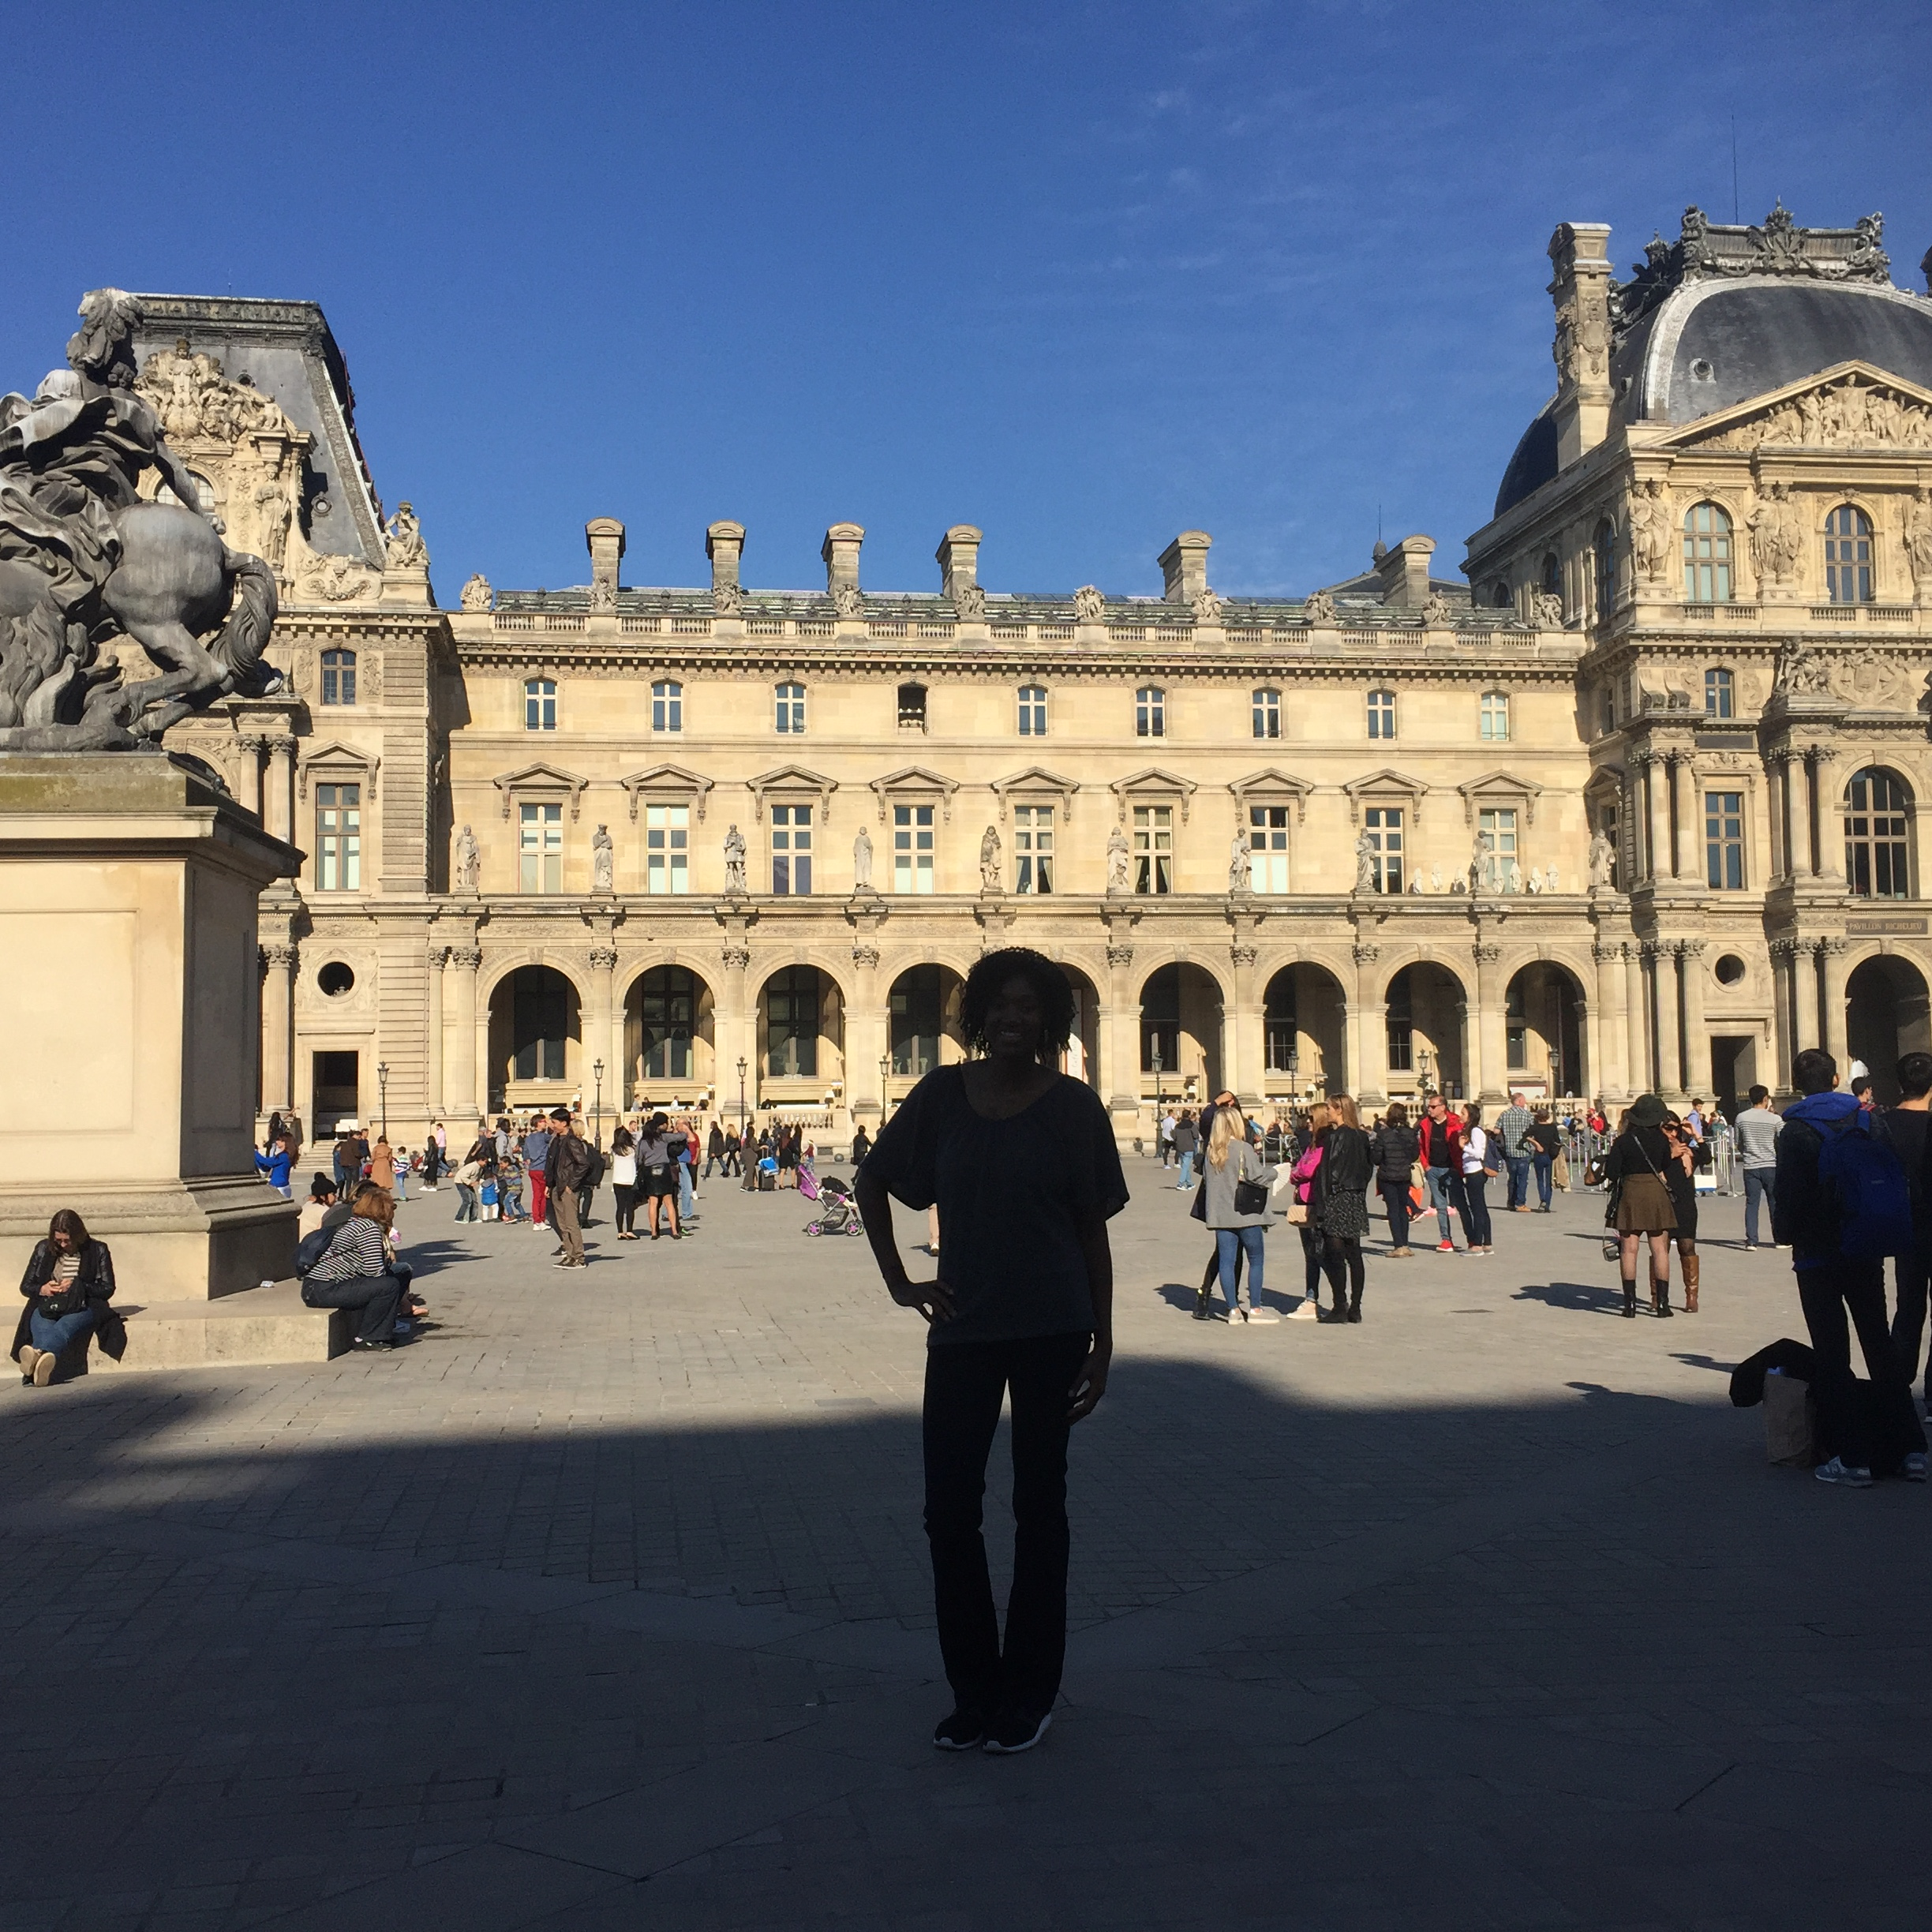 Outside the louvre!